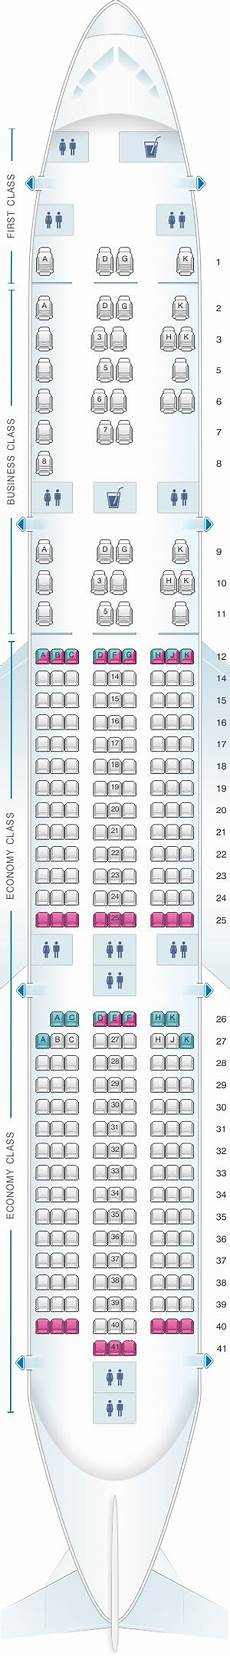 Airbus A350 900 Seating Chart Seat Map Malaysia Airlines Airbus A350 900 Seatmaestro